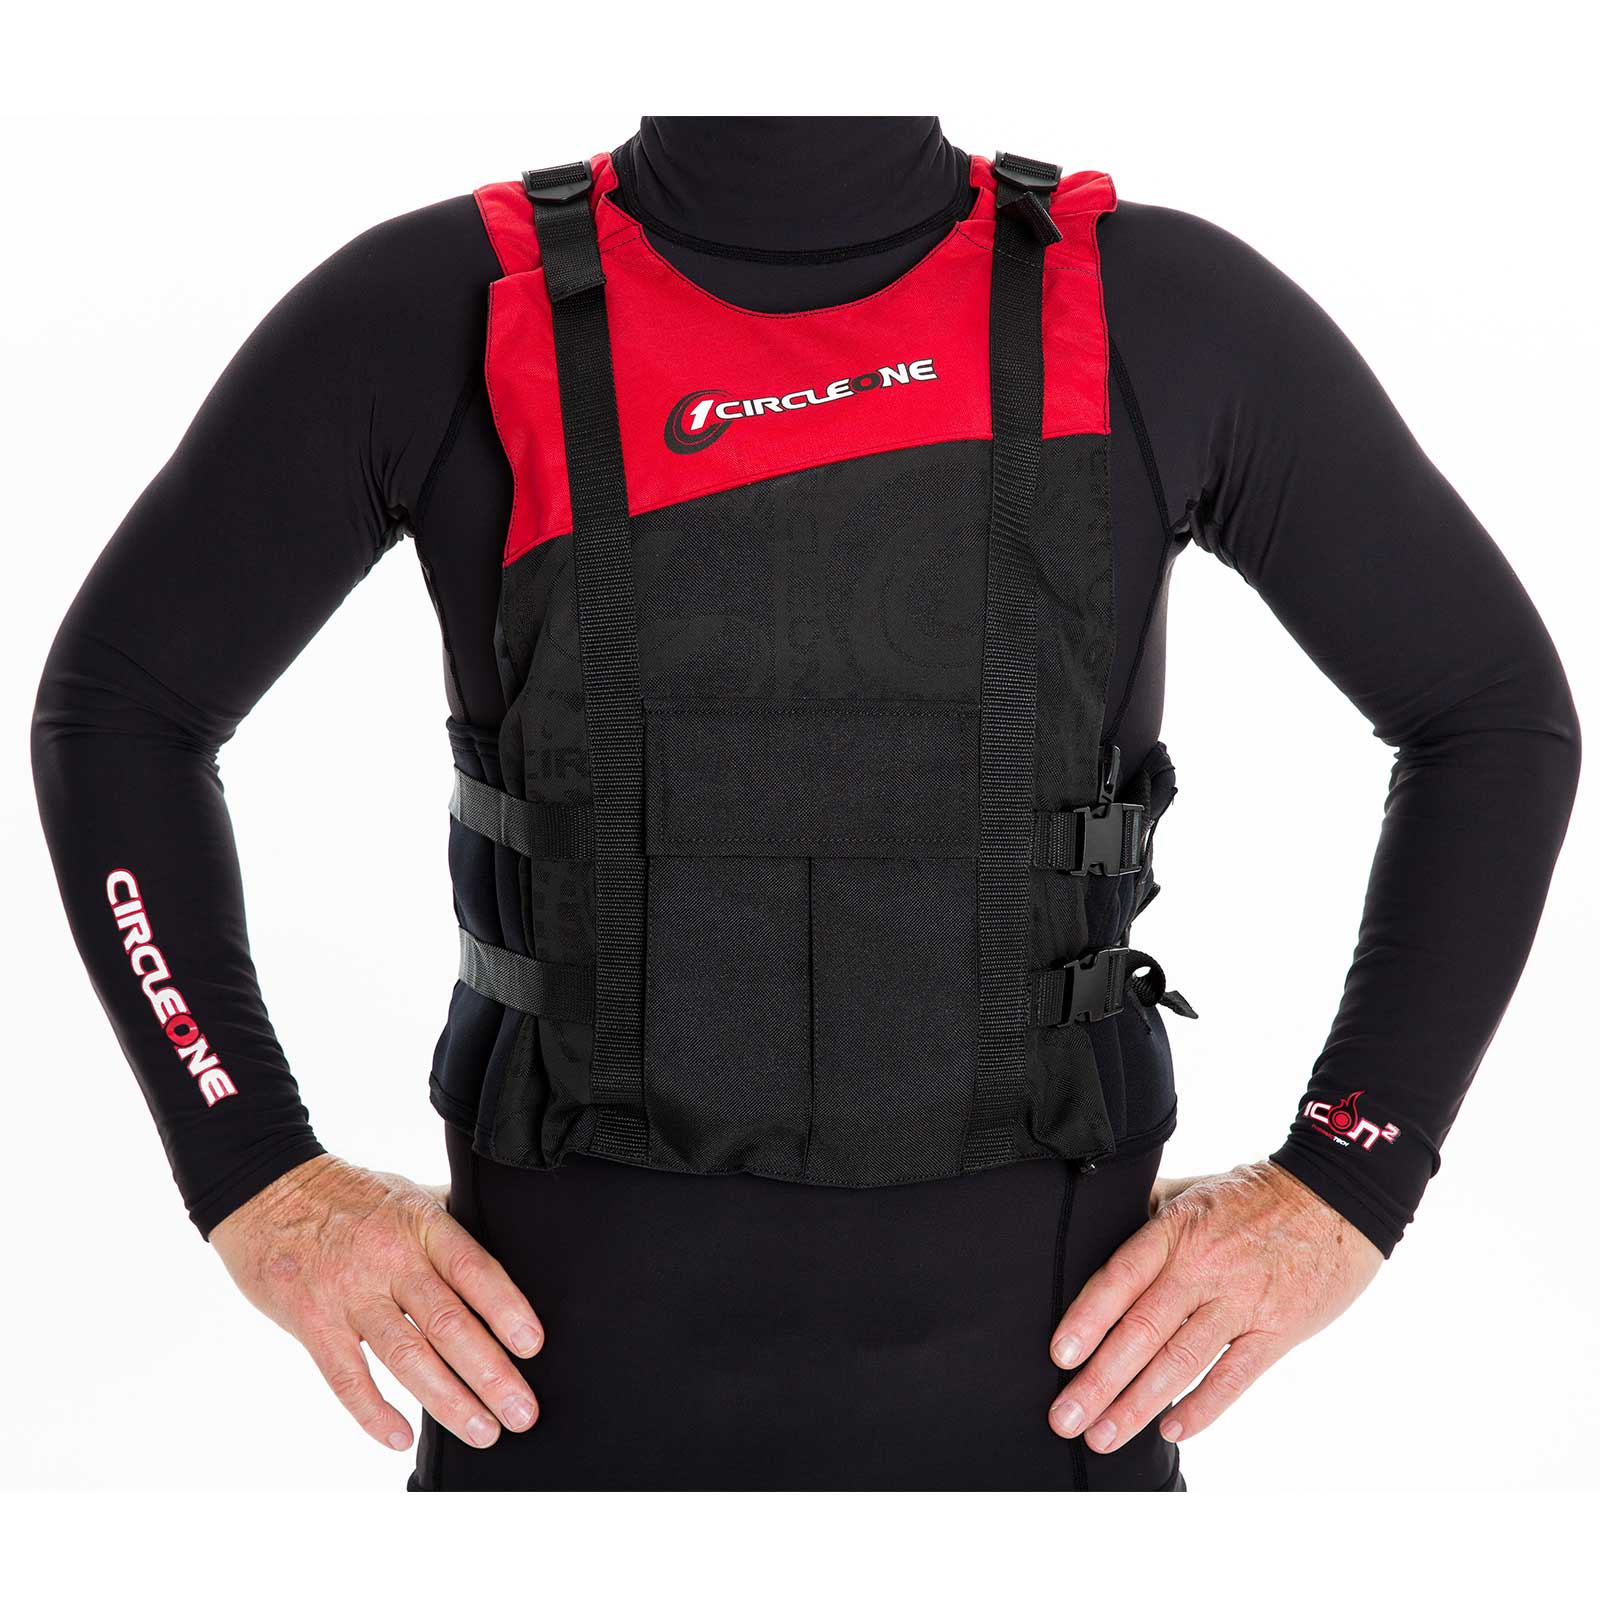 50N Adult Adjustable Buoyancy Aid PFD with Side Zip (CE EN393)